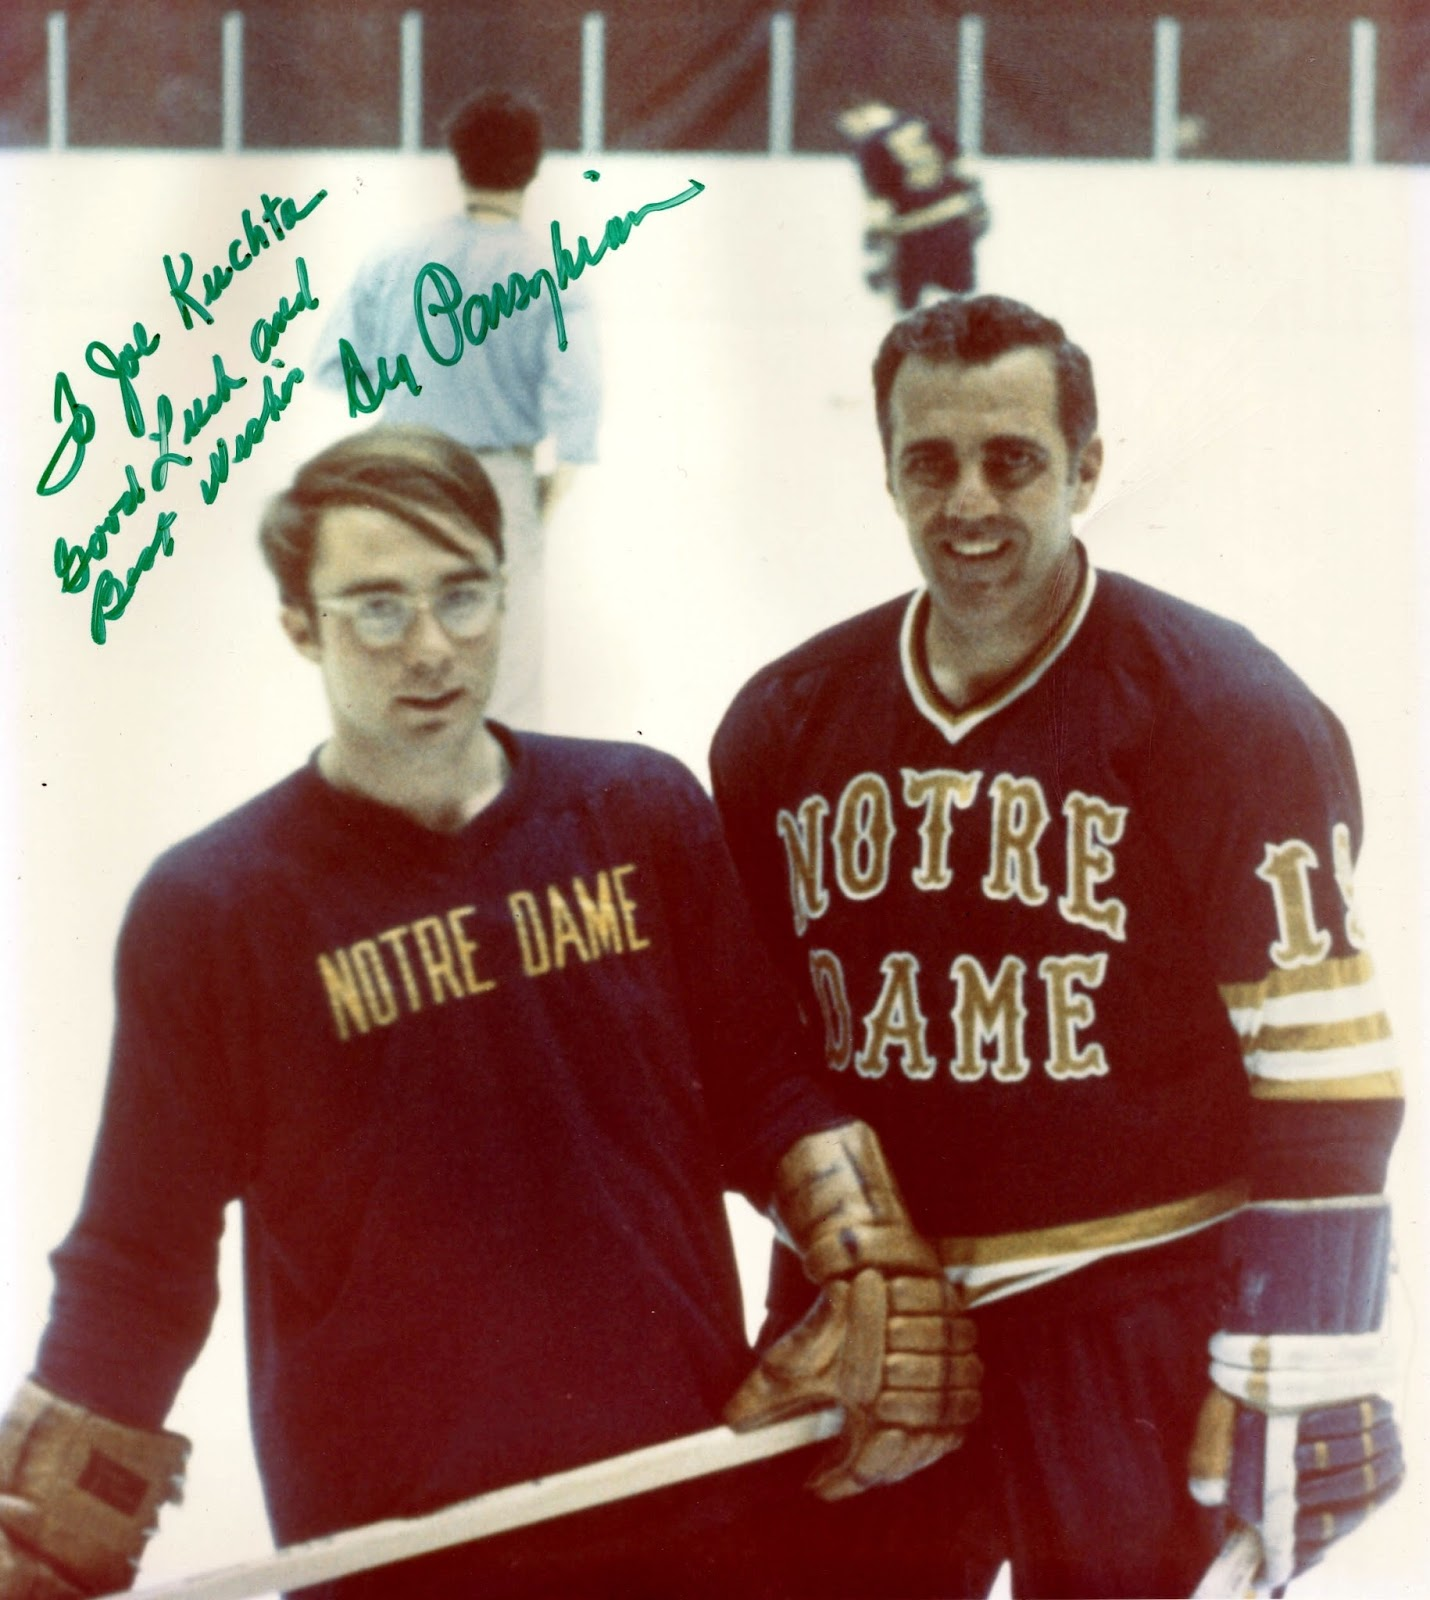 """86c735969fa ND hockey coach Charles """"Lefty"""" Smith and Ara organized a hockey game in  the late spring of 1970 between the faculty of Notre Dame and the  University of ..."""